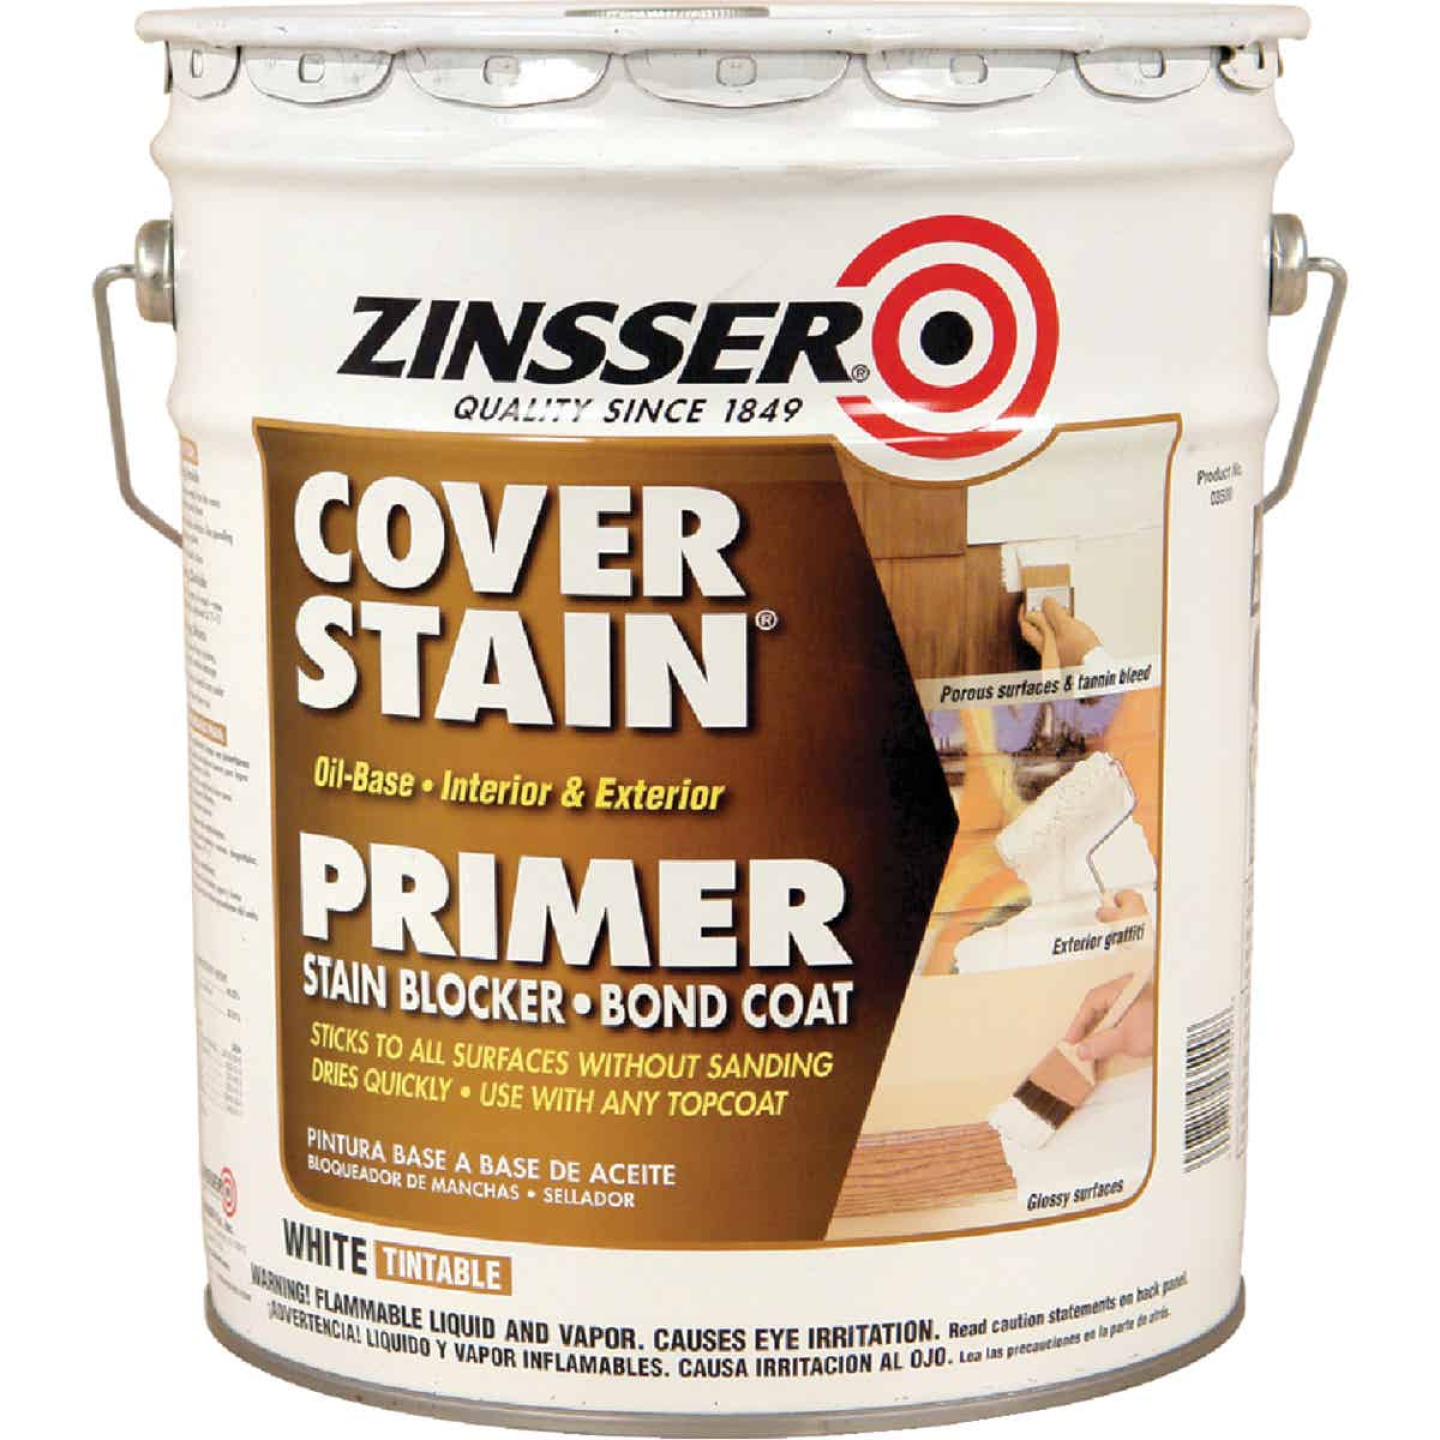 Zinsser Cover-Stain Oil-Base Interior/Exterior Sealer And Stain-Killer Primer, White, 5 Gal. Image 1